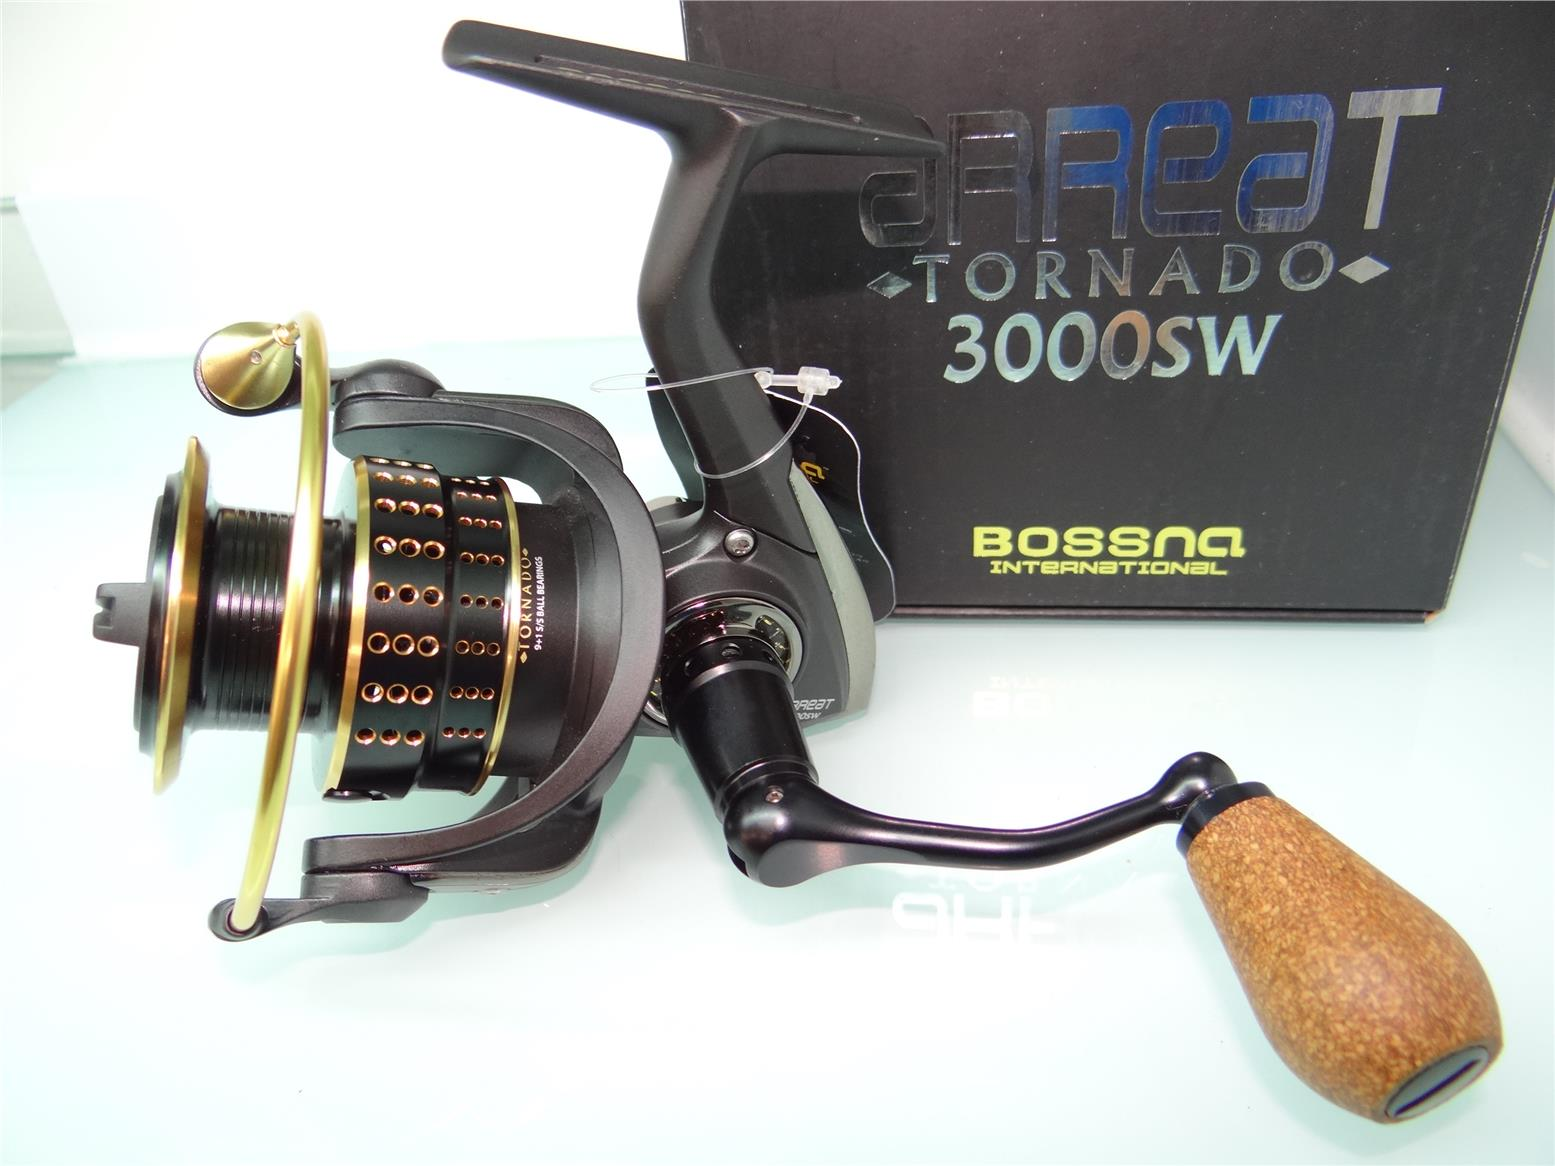 Bossna Arreat Tornado 3000SW Gold fishing reel